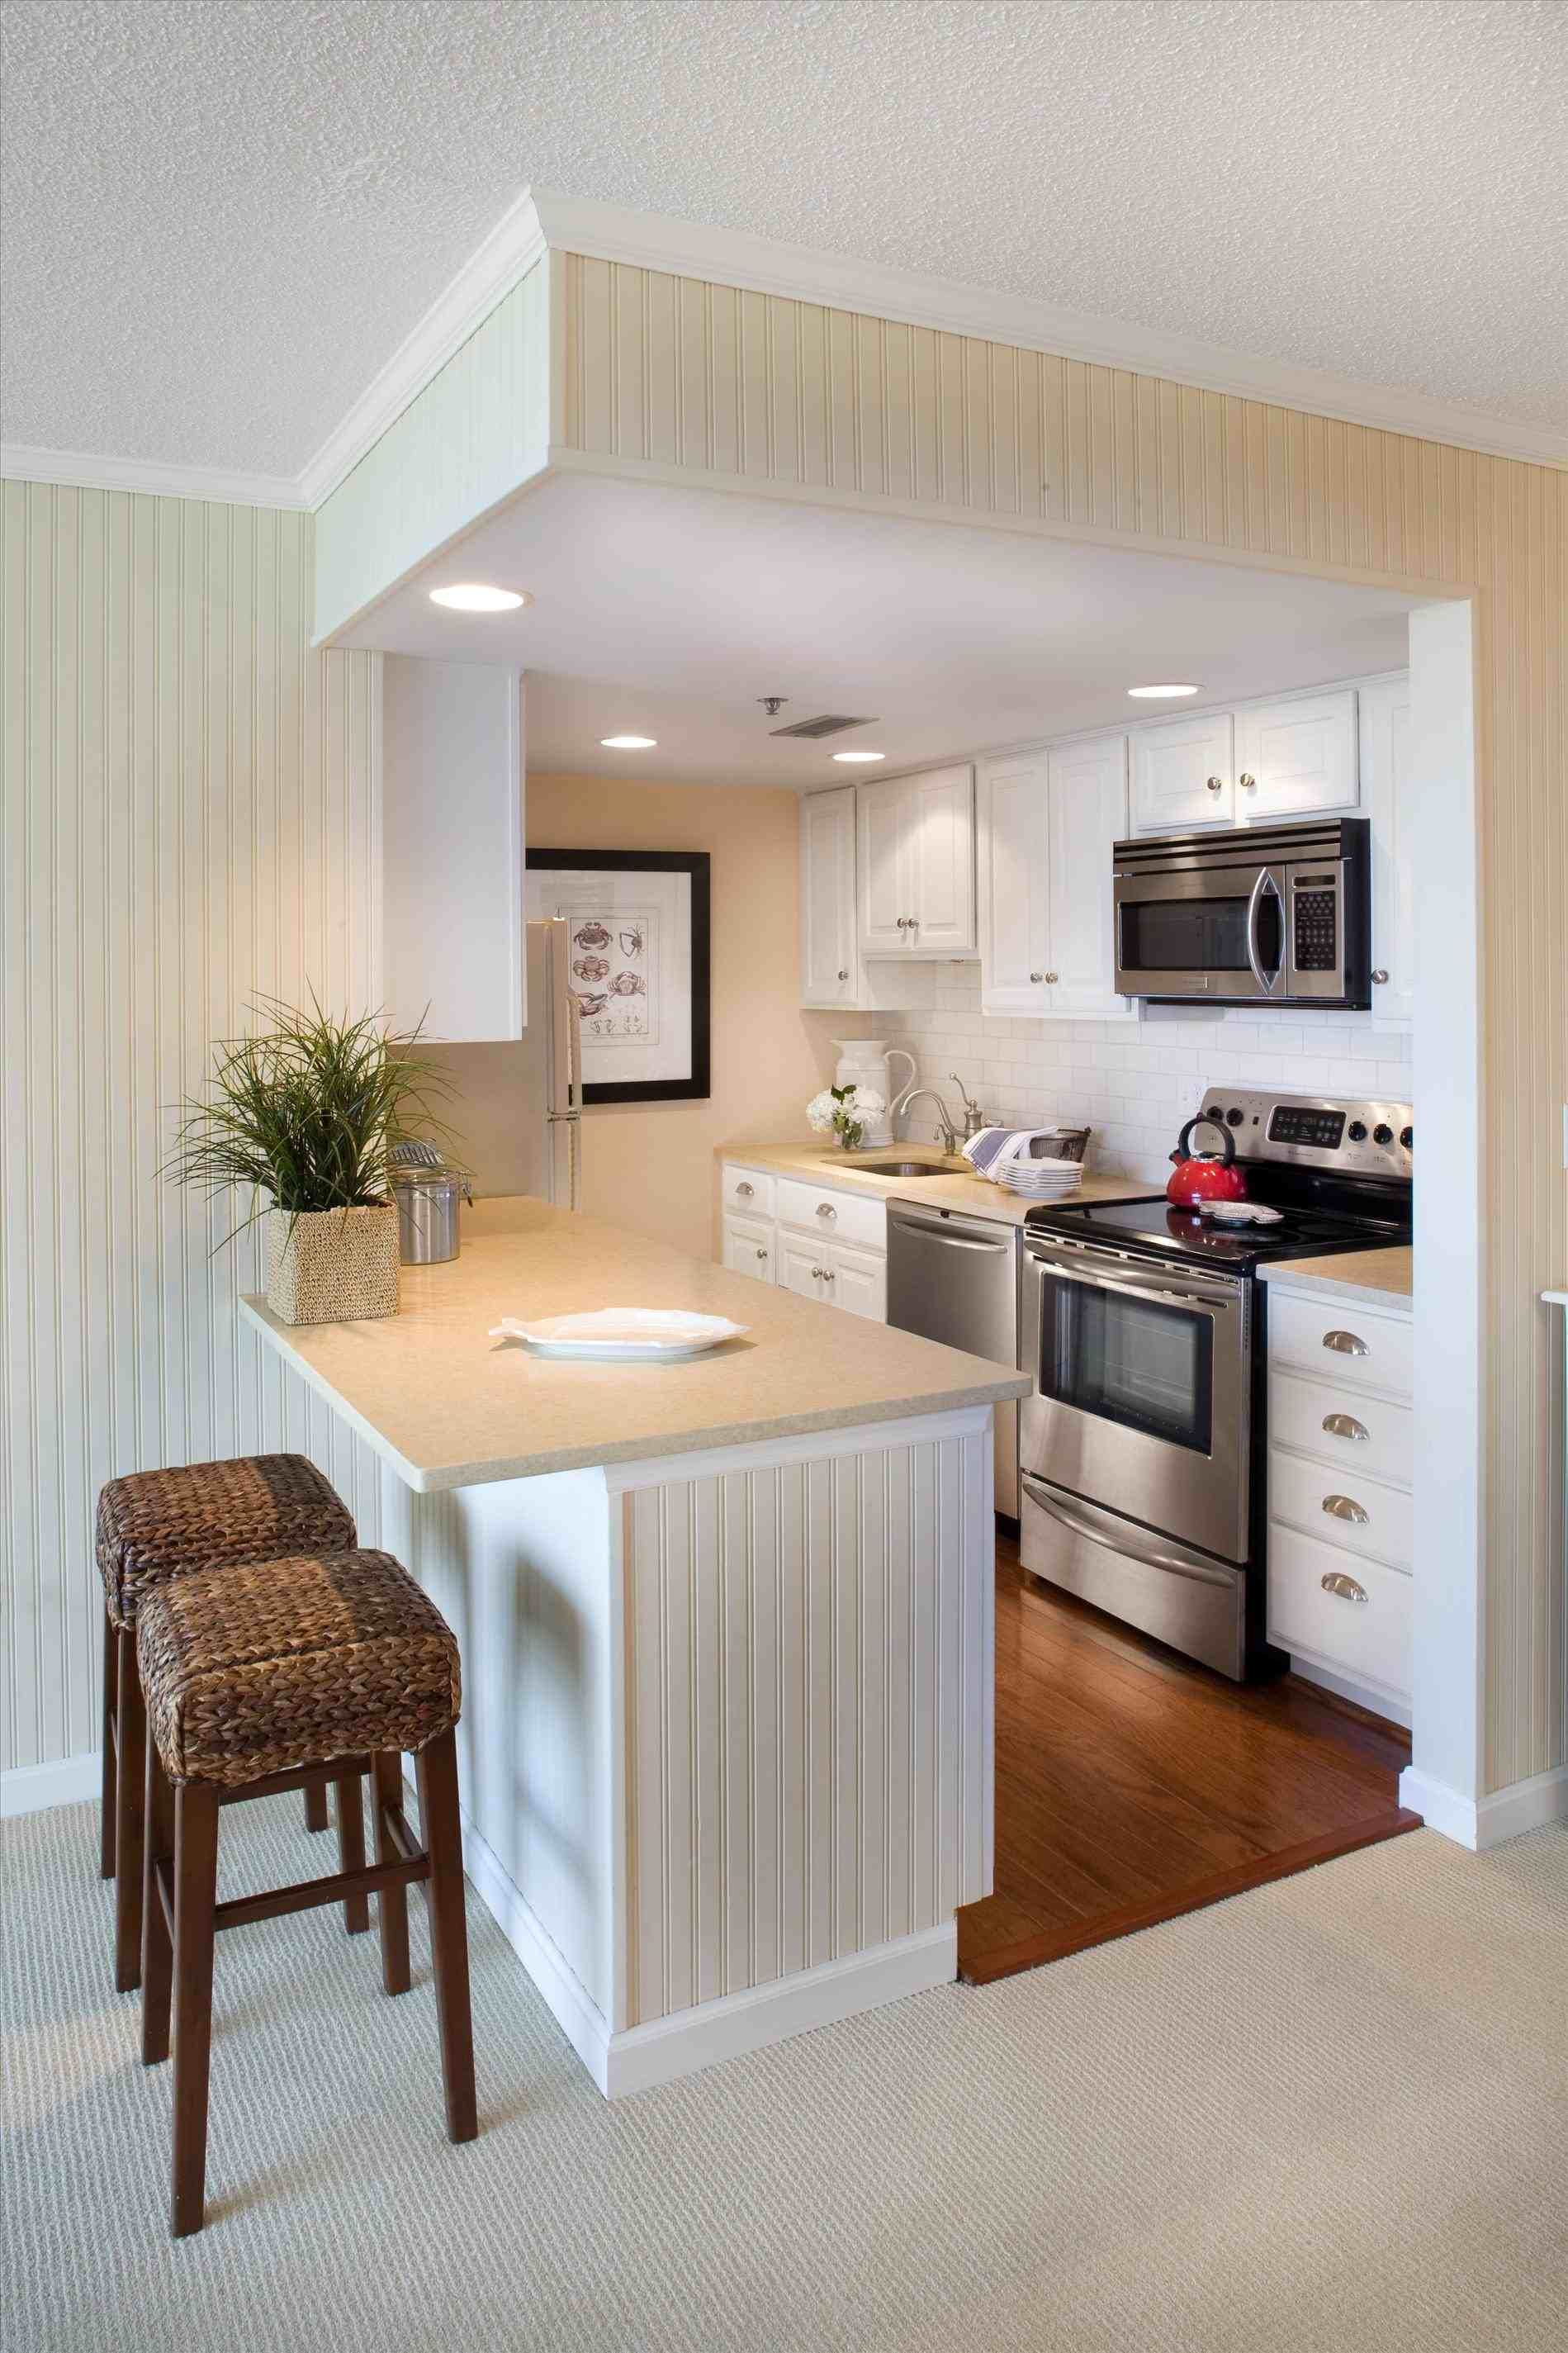 New Post Interior Design For Small Houses Kitchen Visit Bobayule Trending  Decors